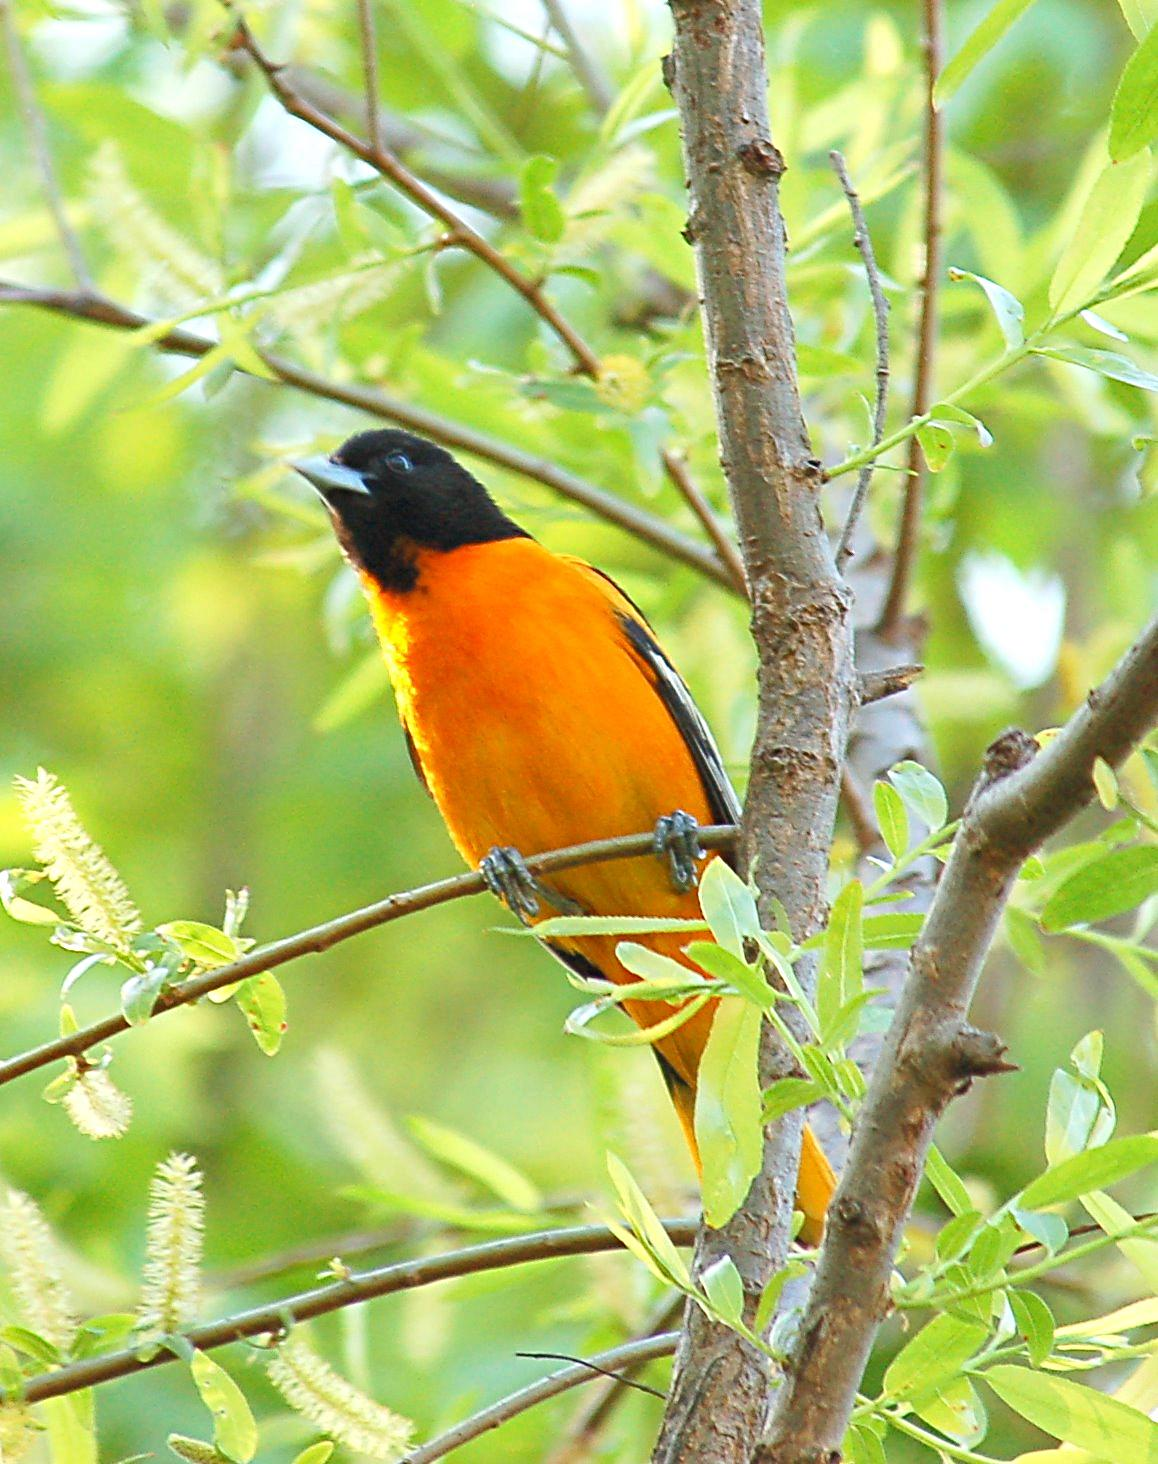 Baltimore Oriole on the tree